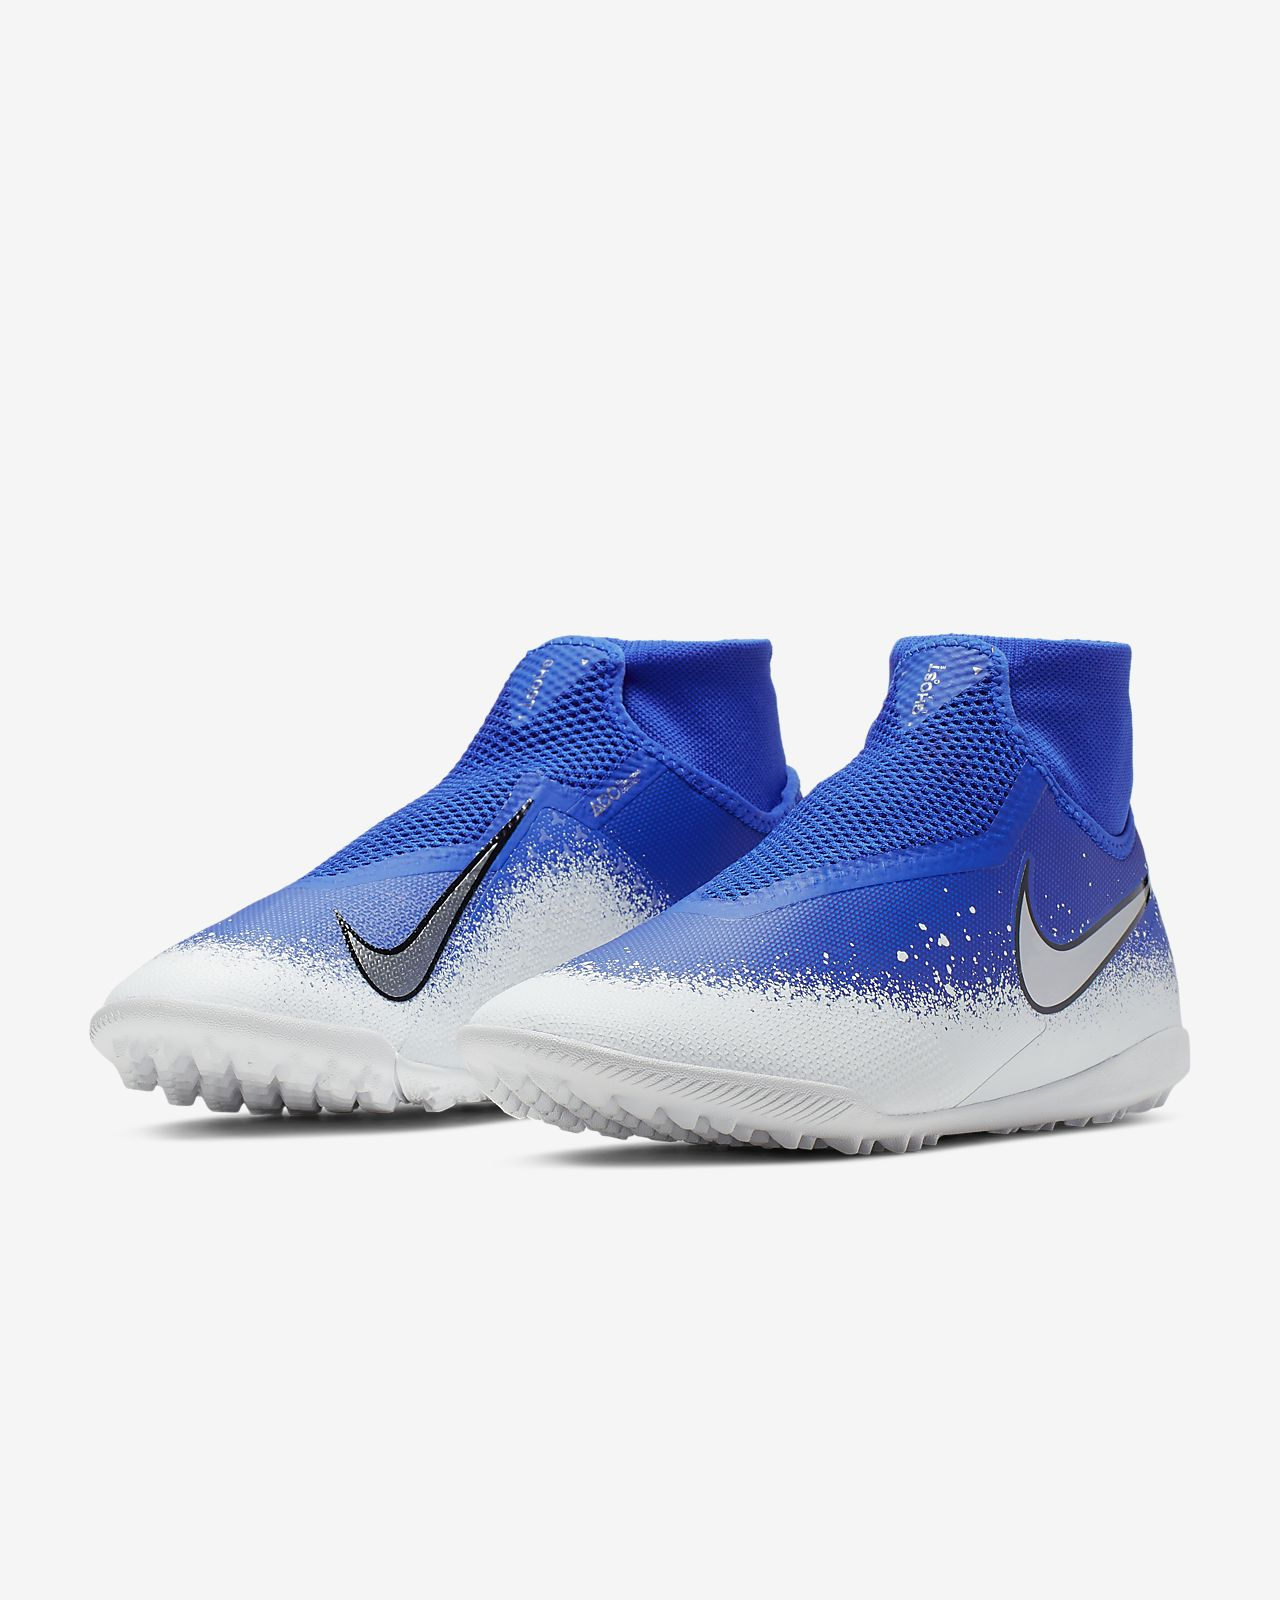 save off 0fdf5 e05c3 ... Chaussure de football pour surface synthétique Nike React Phantom  Vision Pro Dynamic Fit TF